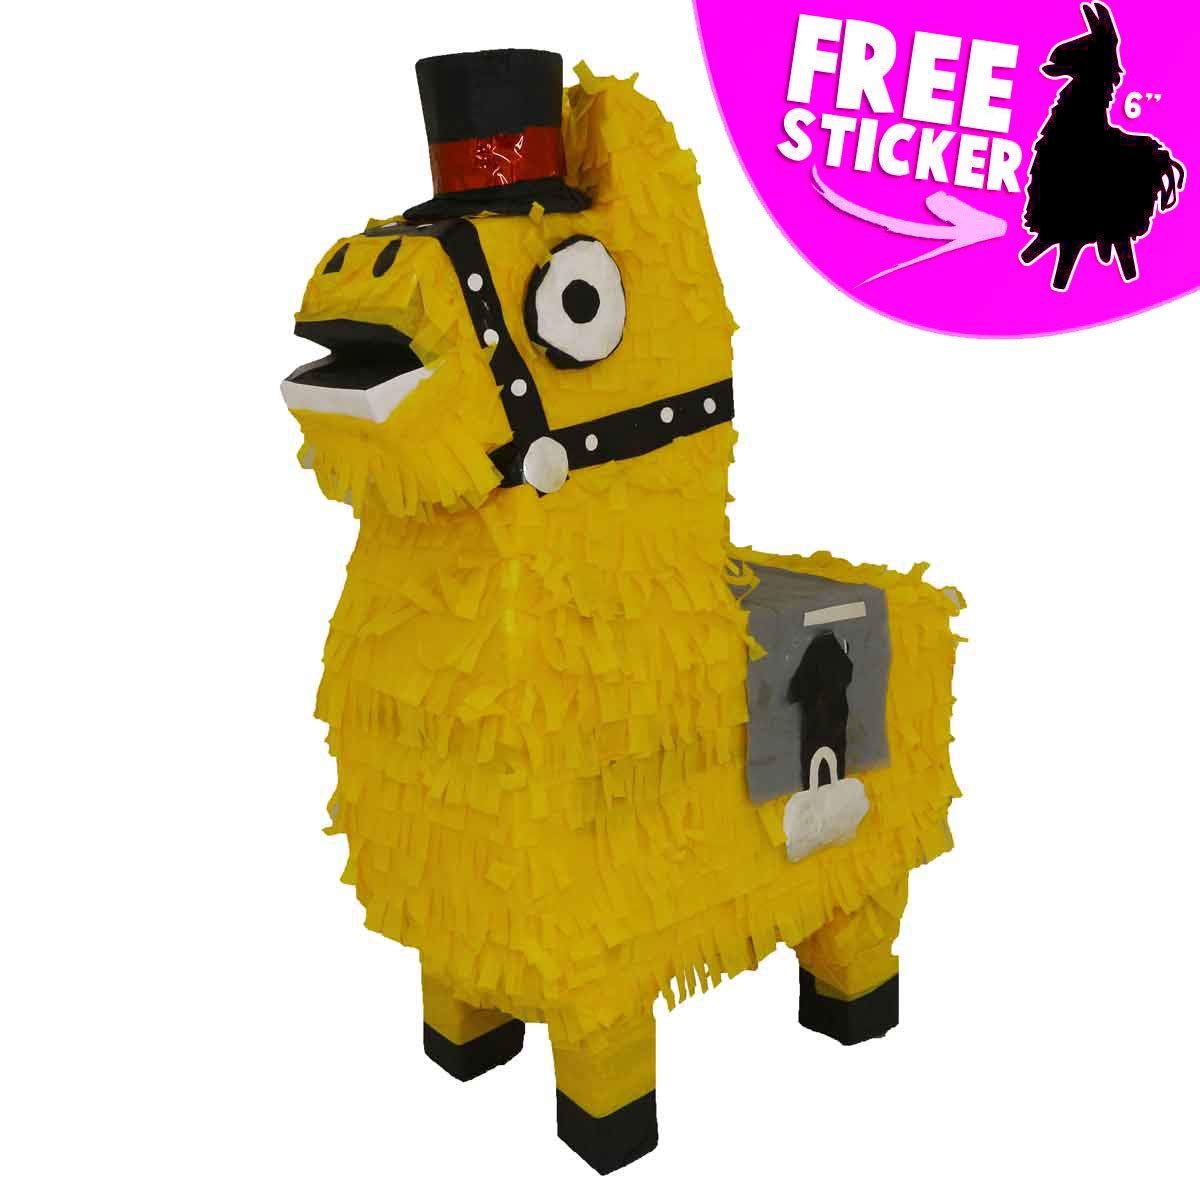 Aurabeam Loot Llama Party Pinata (Yellow Loot Llama Piñata) Party Decorations and Party Games - Hand made in Mexico